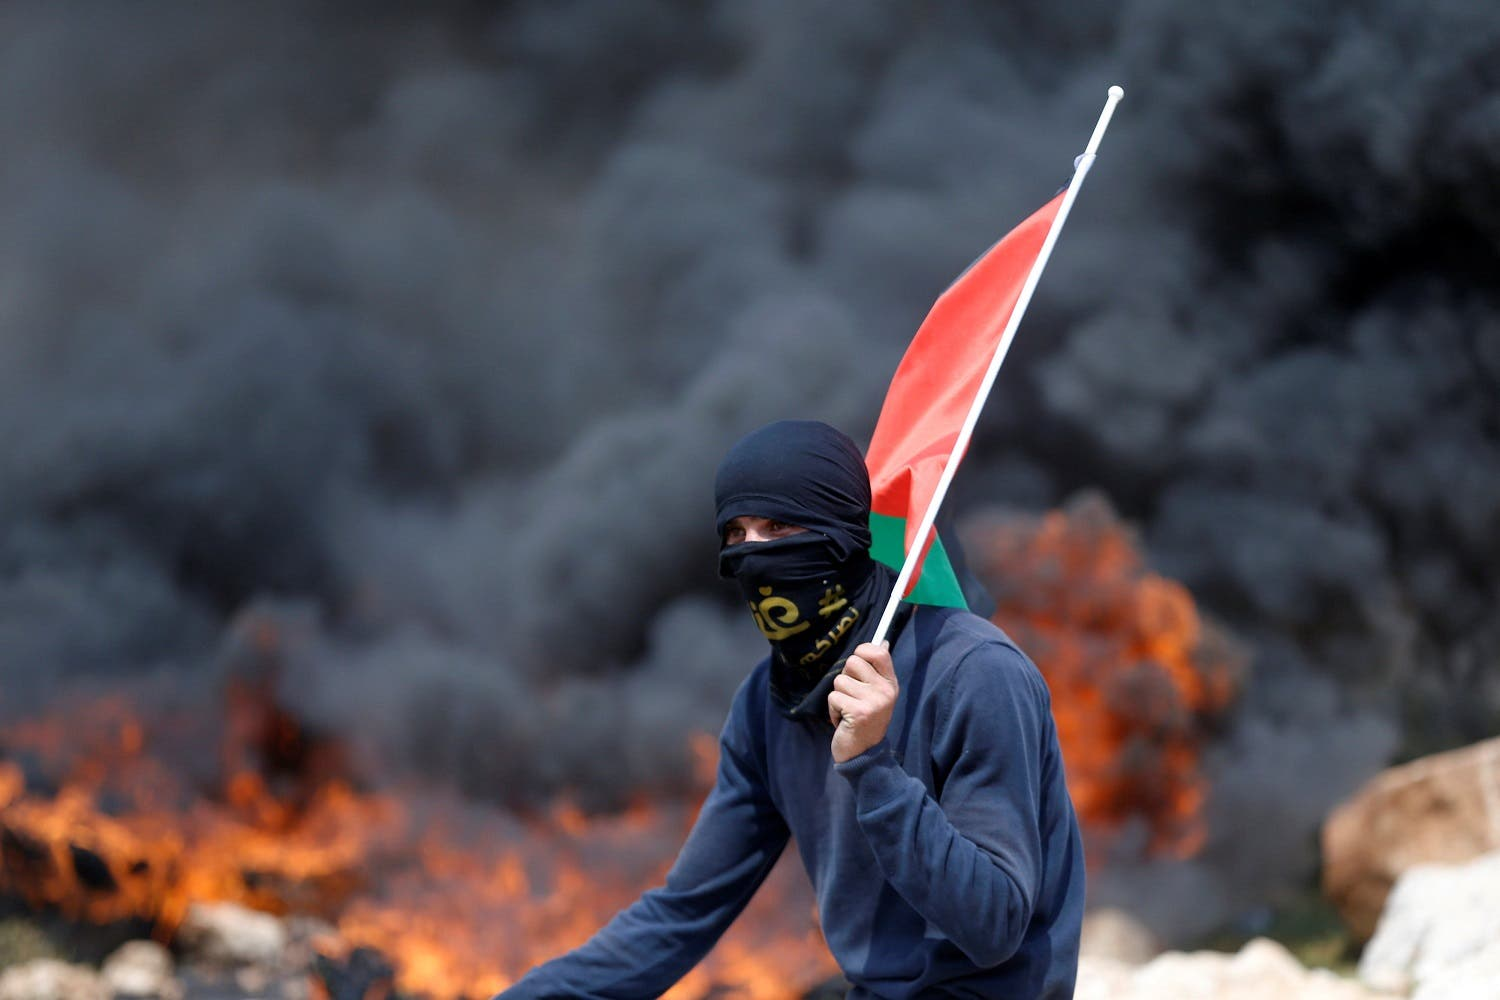 A protester holds a Palestinian flag as smoke rises from burning tyres during clashes with Israeli troops at a protest against Jewish settlements, in al-Mughayyir village near the West Bank city of Ramallah March 24, 2017. (Reuters)